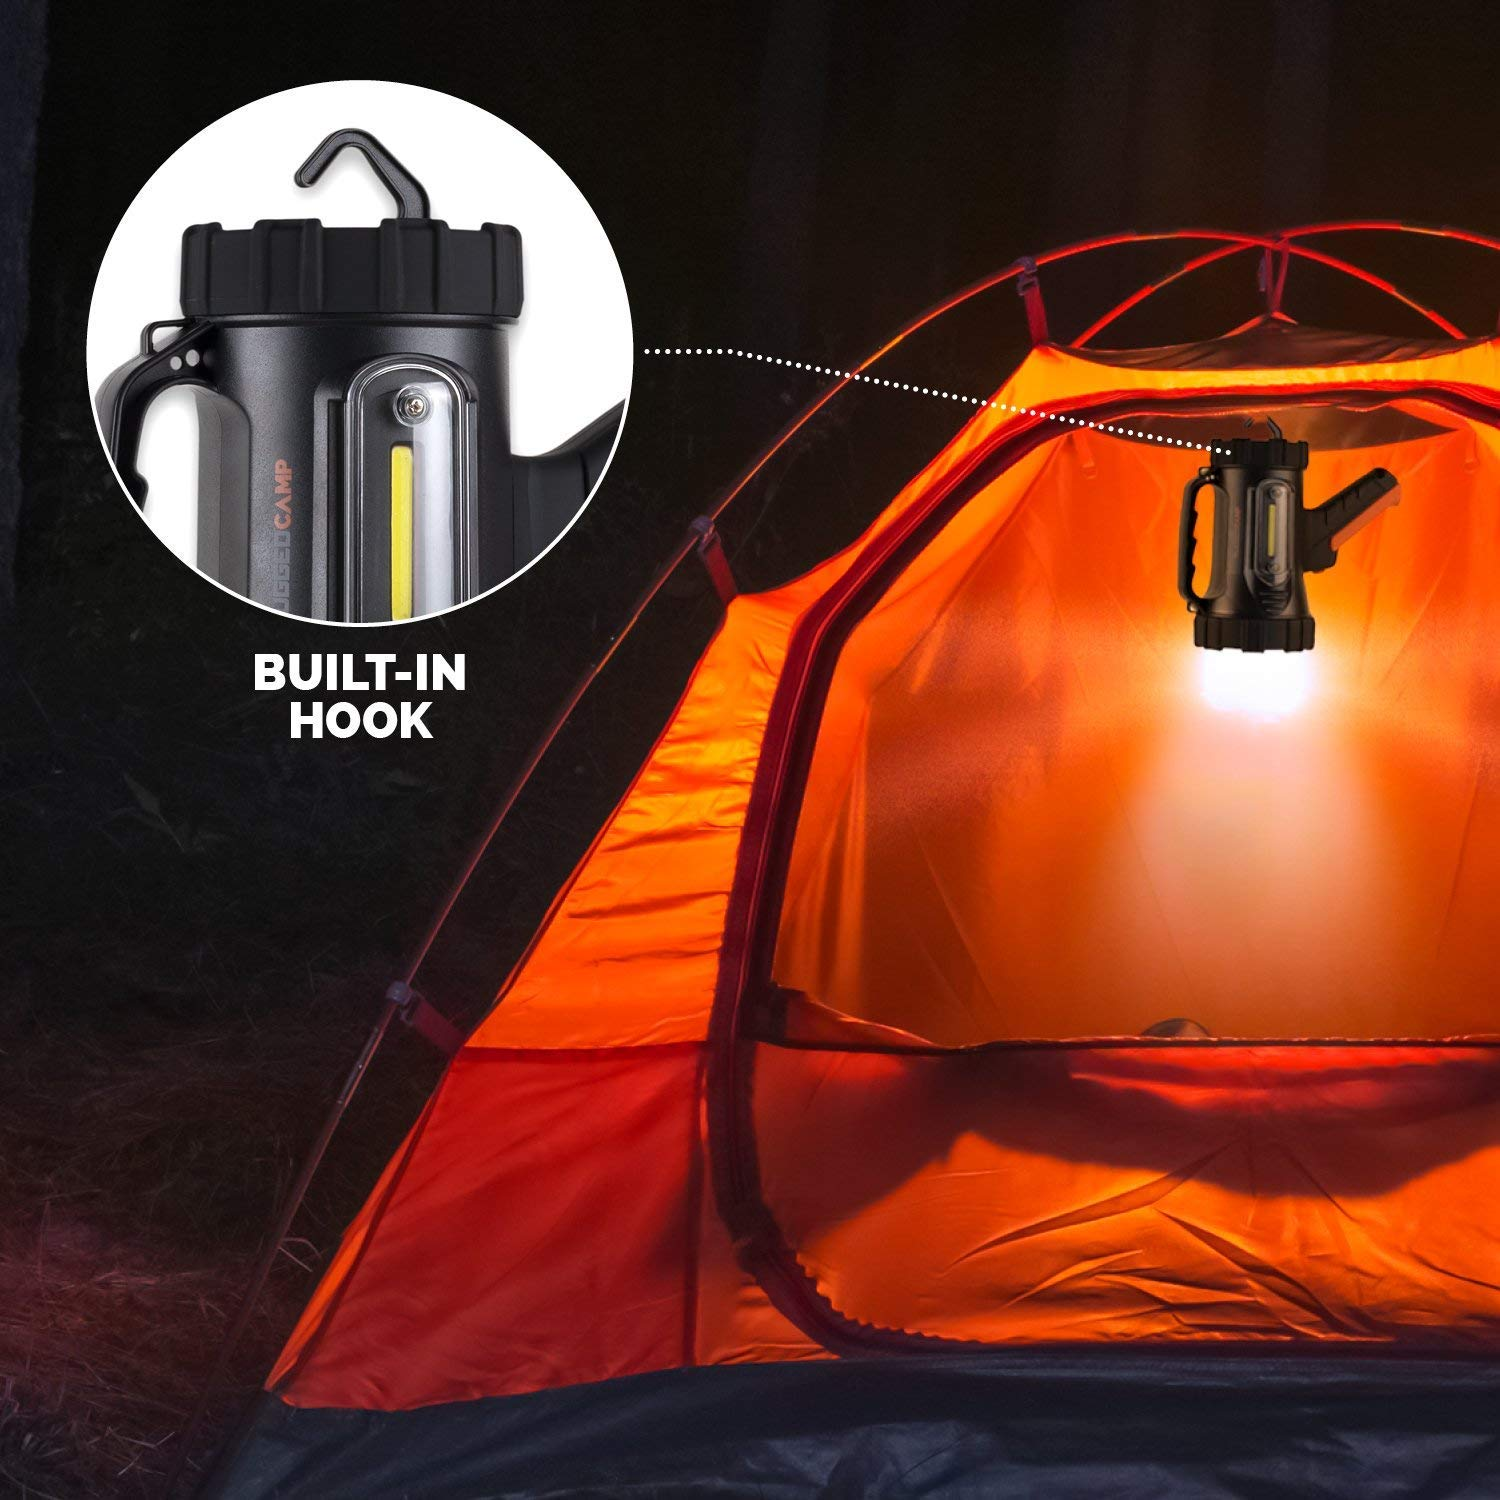 Rugged Camp Titan X10 Rechargeable Spotlight - 1000 Lumens - High Powered 10W LED Bright Flashlight - Work Light & Tripod - Perfect for Camping, Hiking, Hunting, Emergencies & Outdoors (Black/Orange) by Rugged Camp (Image #8)